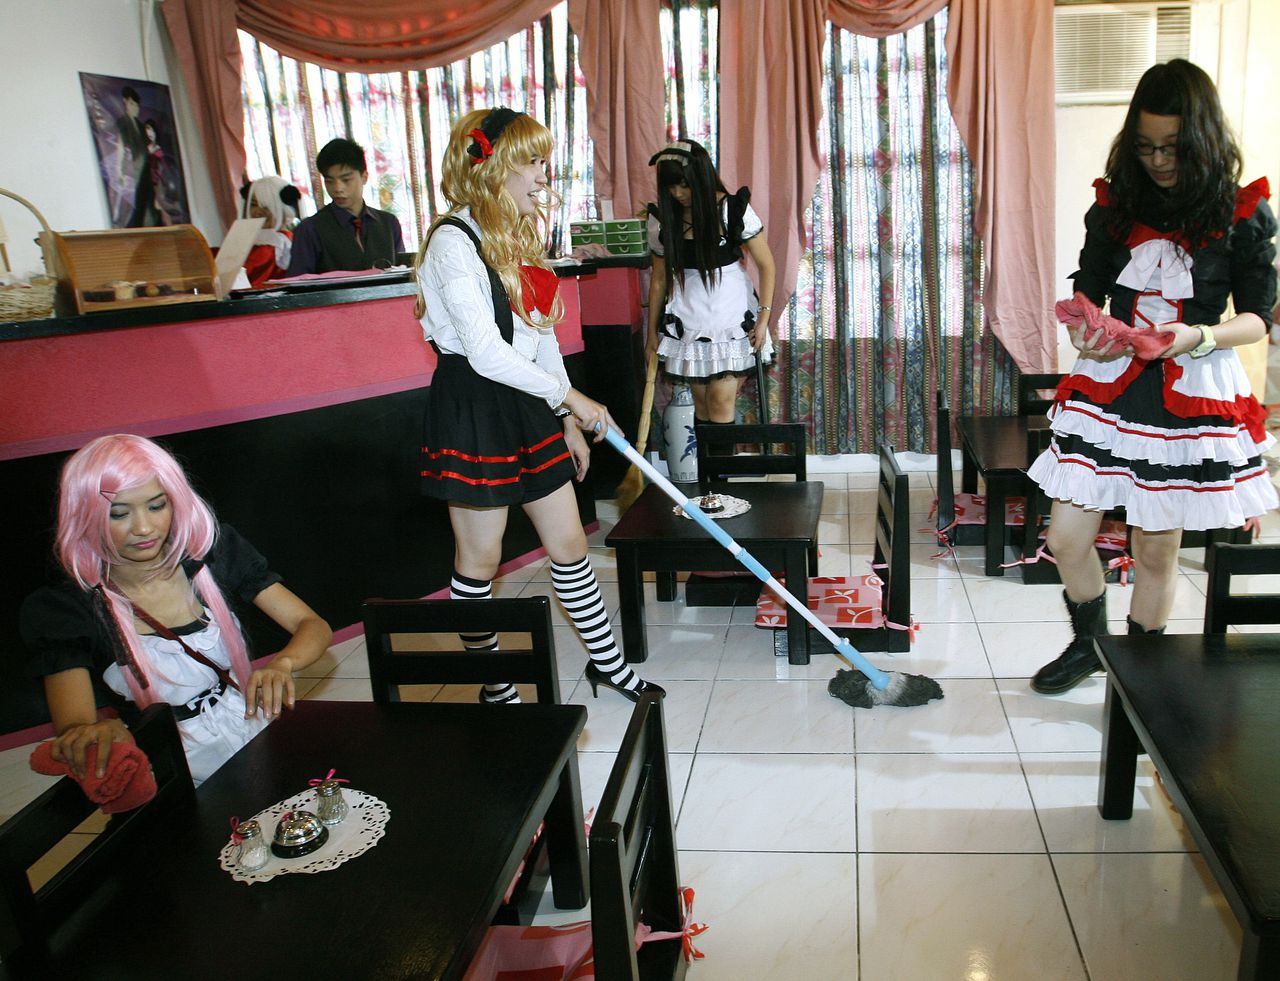 Cafe attendants, dressed up in maid uniforms, clean up at the MeiDolls Cafe in Cainta Rizal, east of Manila January 30, 2011. Philippines opened its first costume play (cosplay) maid cafe in the country where servers entertain customers with Japanese role playing culture. REUTERS/Cheryl Ravelo (PHILIPPINES - Tags: SOCIETY)